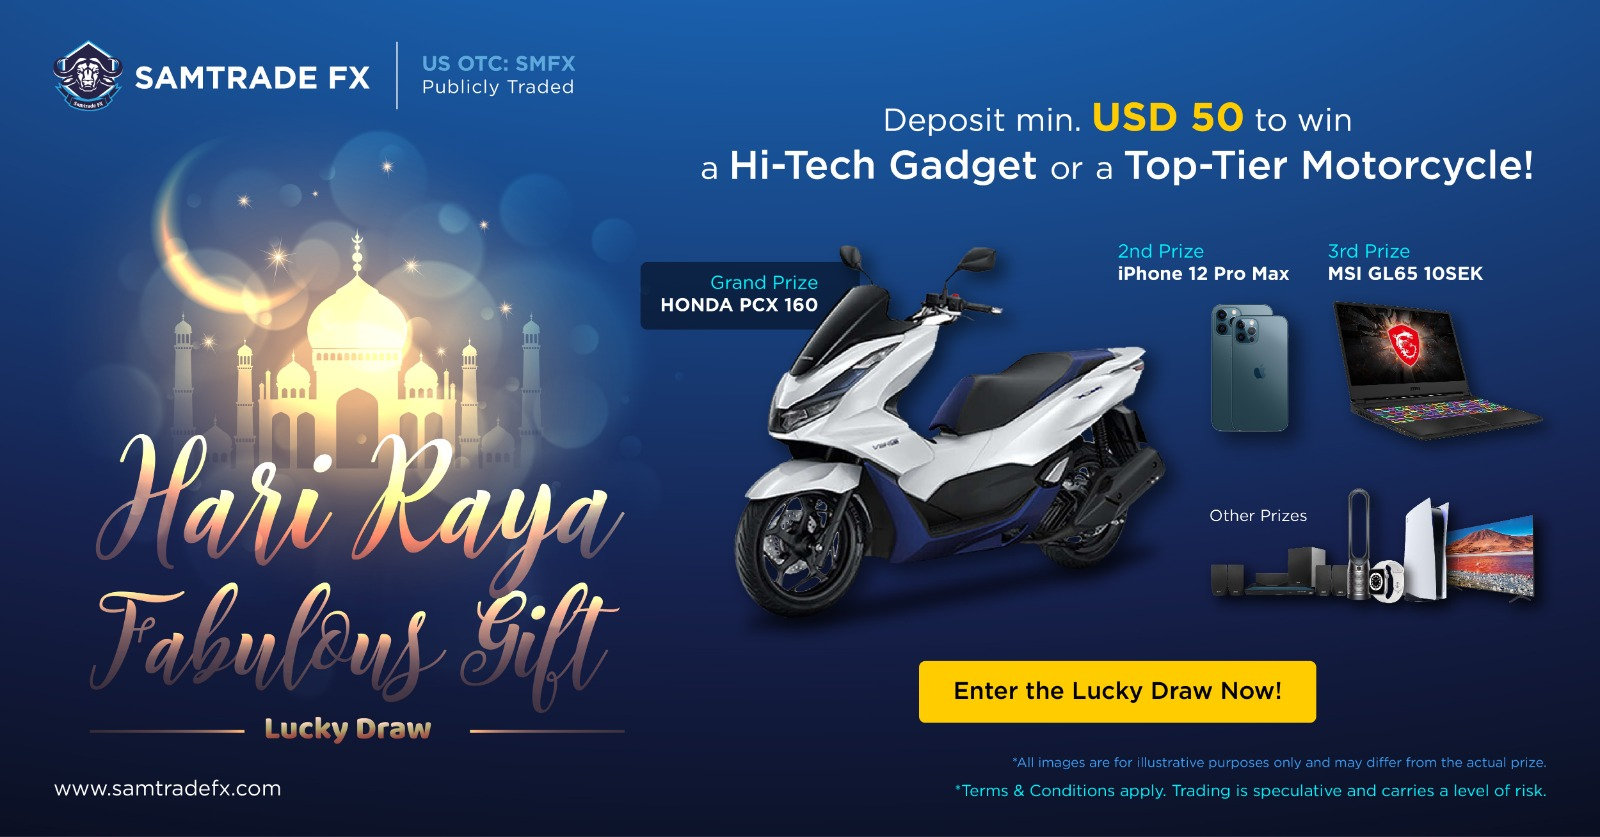 Take Hari Raya Fabulous Gift Lucky Draw on SamtradeFX